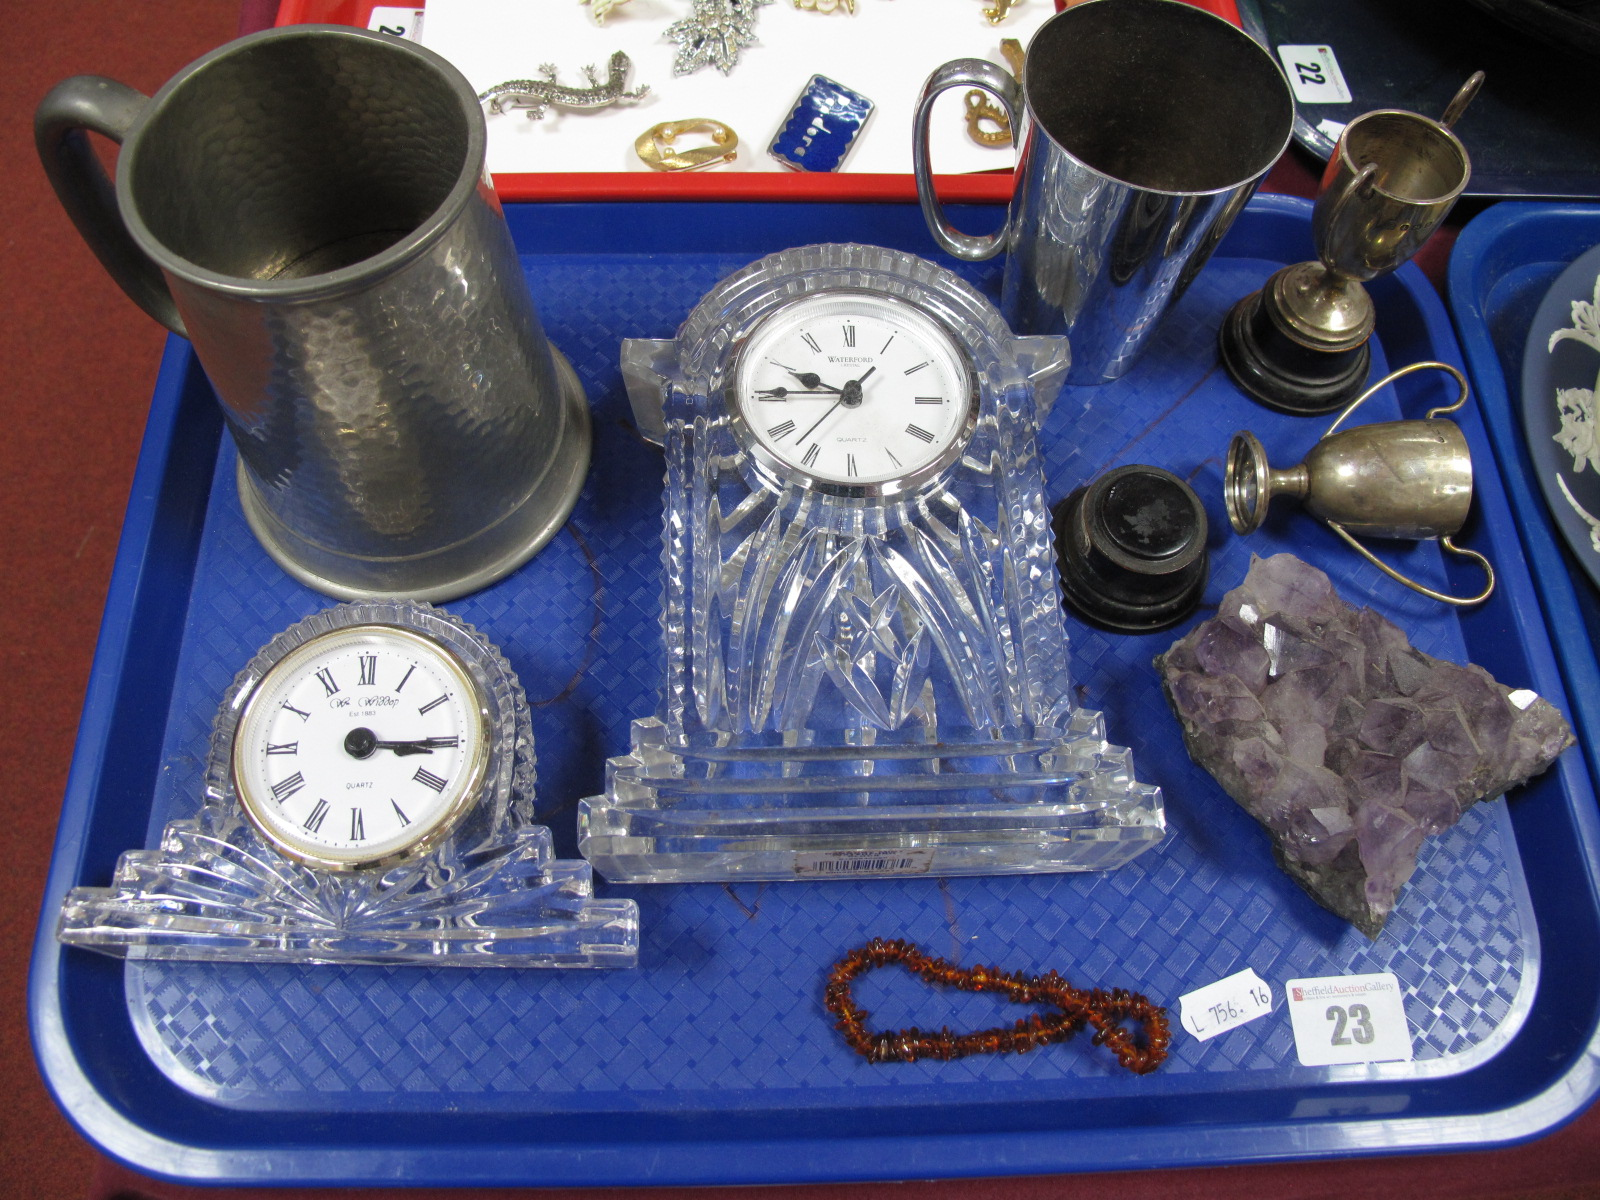 Lot 23 - Two Silver Trophy Cups, 7.5cm high, mineral specimen, Waterford and Widdop clocks, Dixon's musical